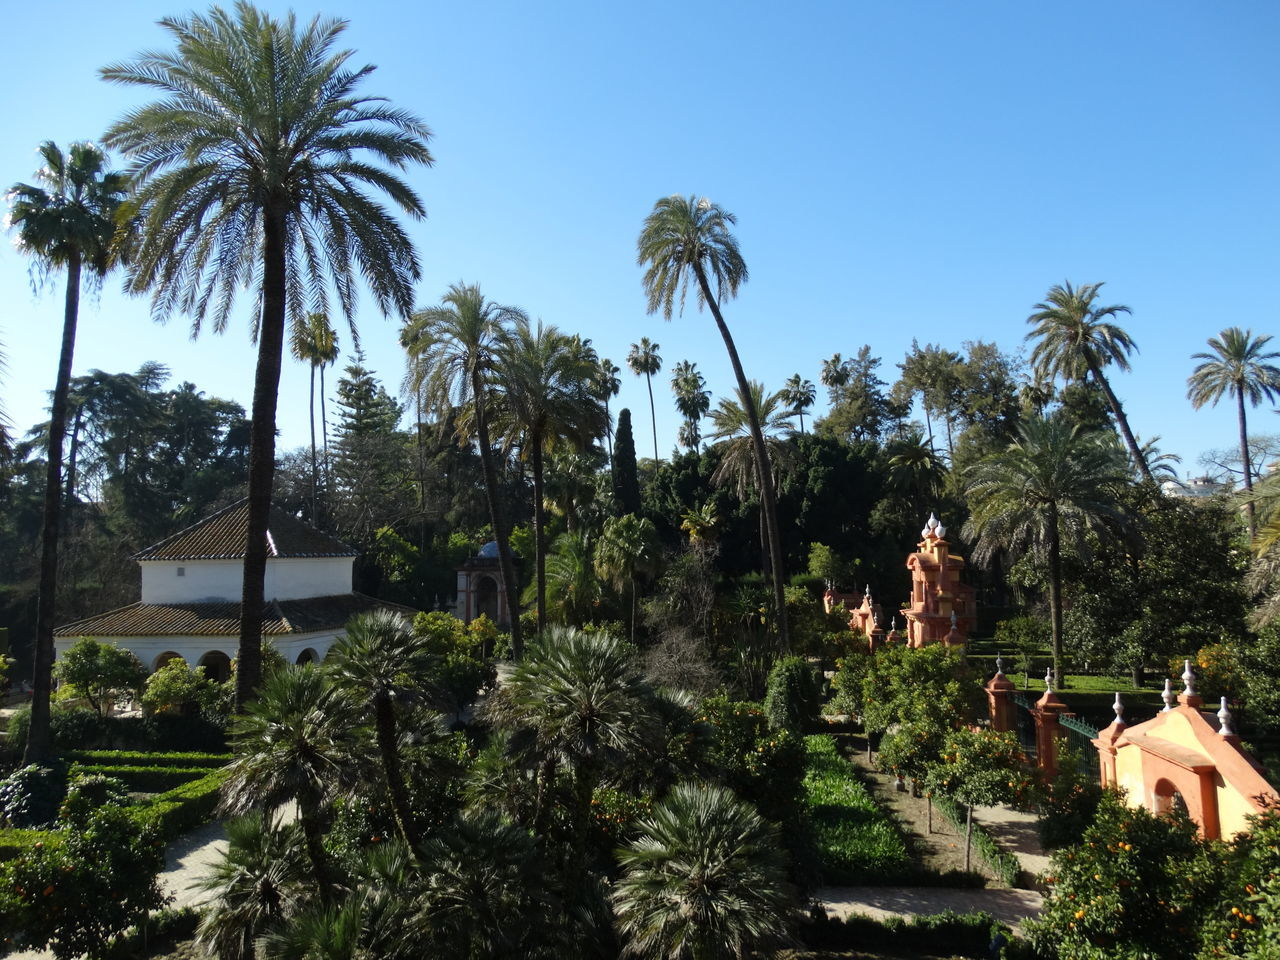 Alcazar Alcázar De Sevilla Architecture Building Exterior Built Structure Clear Sky Day Growth Nature No People Outdoors Palm Tree Sevilla Sky SPAIN Travel Destinations Tree Tropical Garden